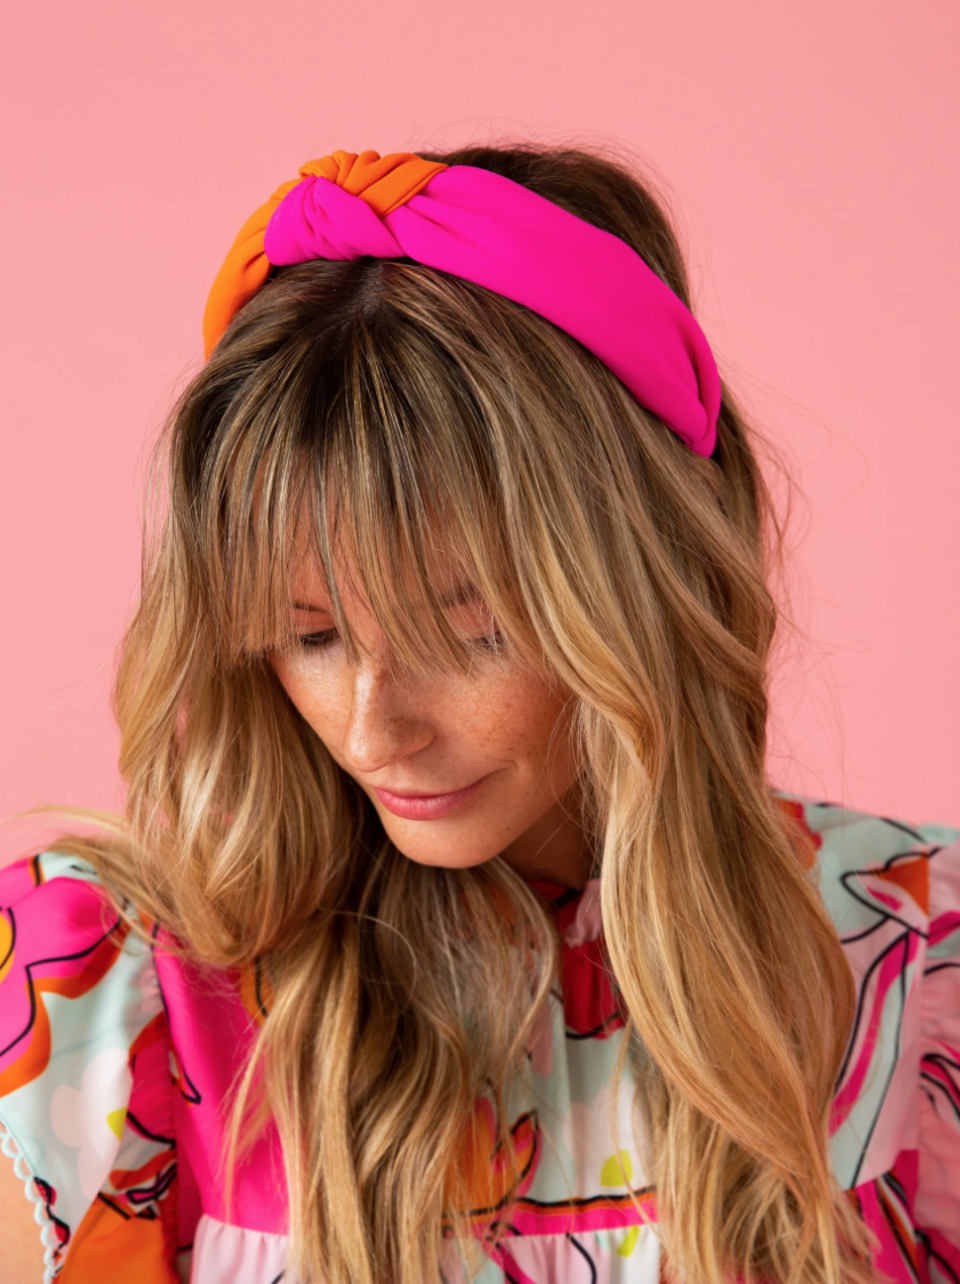 """<p><strong>CROSBY by Mollie Burch</strong></p><p>crosbybymollieburch.com</p><p><strong>$38.00</strong></p><p><a href=""""https://www.crosbybymollieburch.com/collections/headbands/products/holly-headband"""" rel=""""nofollow noopener"""" target=""""_blank"""" data-ylk=""""slk:Shop Now"""" class=""""link rapid-noclick-resp"""">Shop Now</a></p><p>The beautiful color combination of bright pink and orange will really pop against your hair. </p>"""